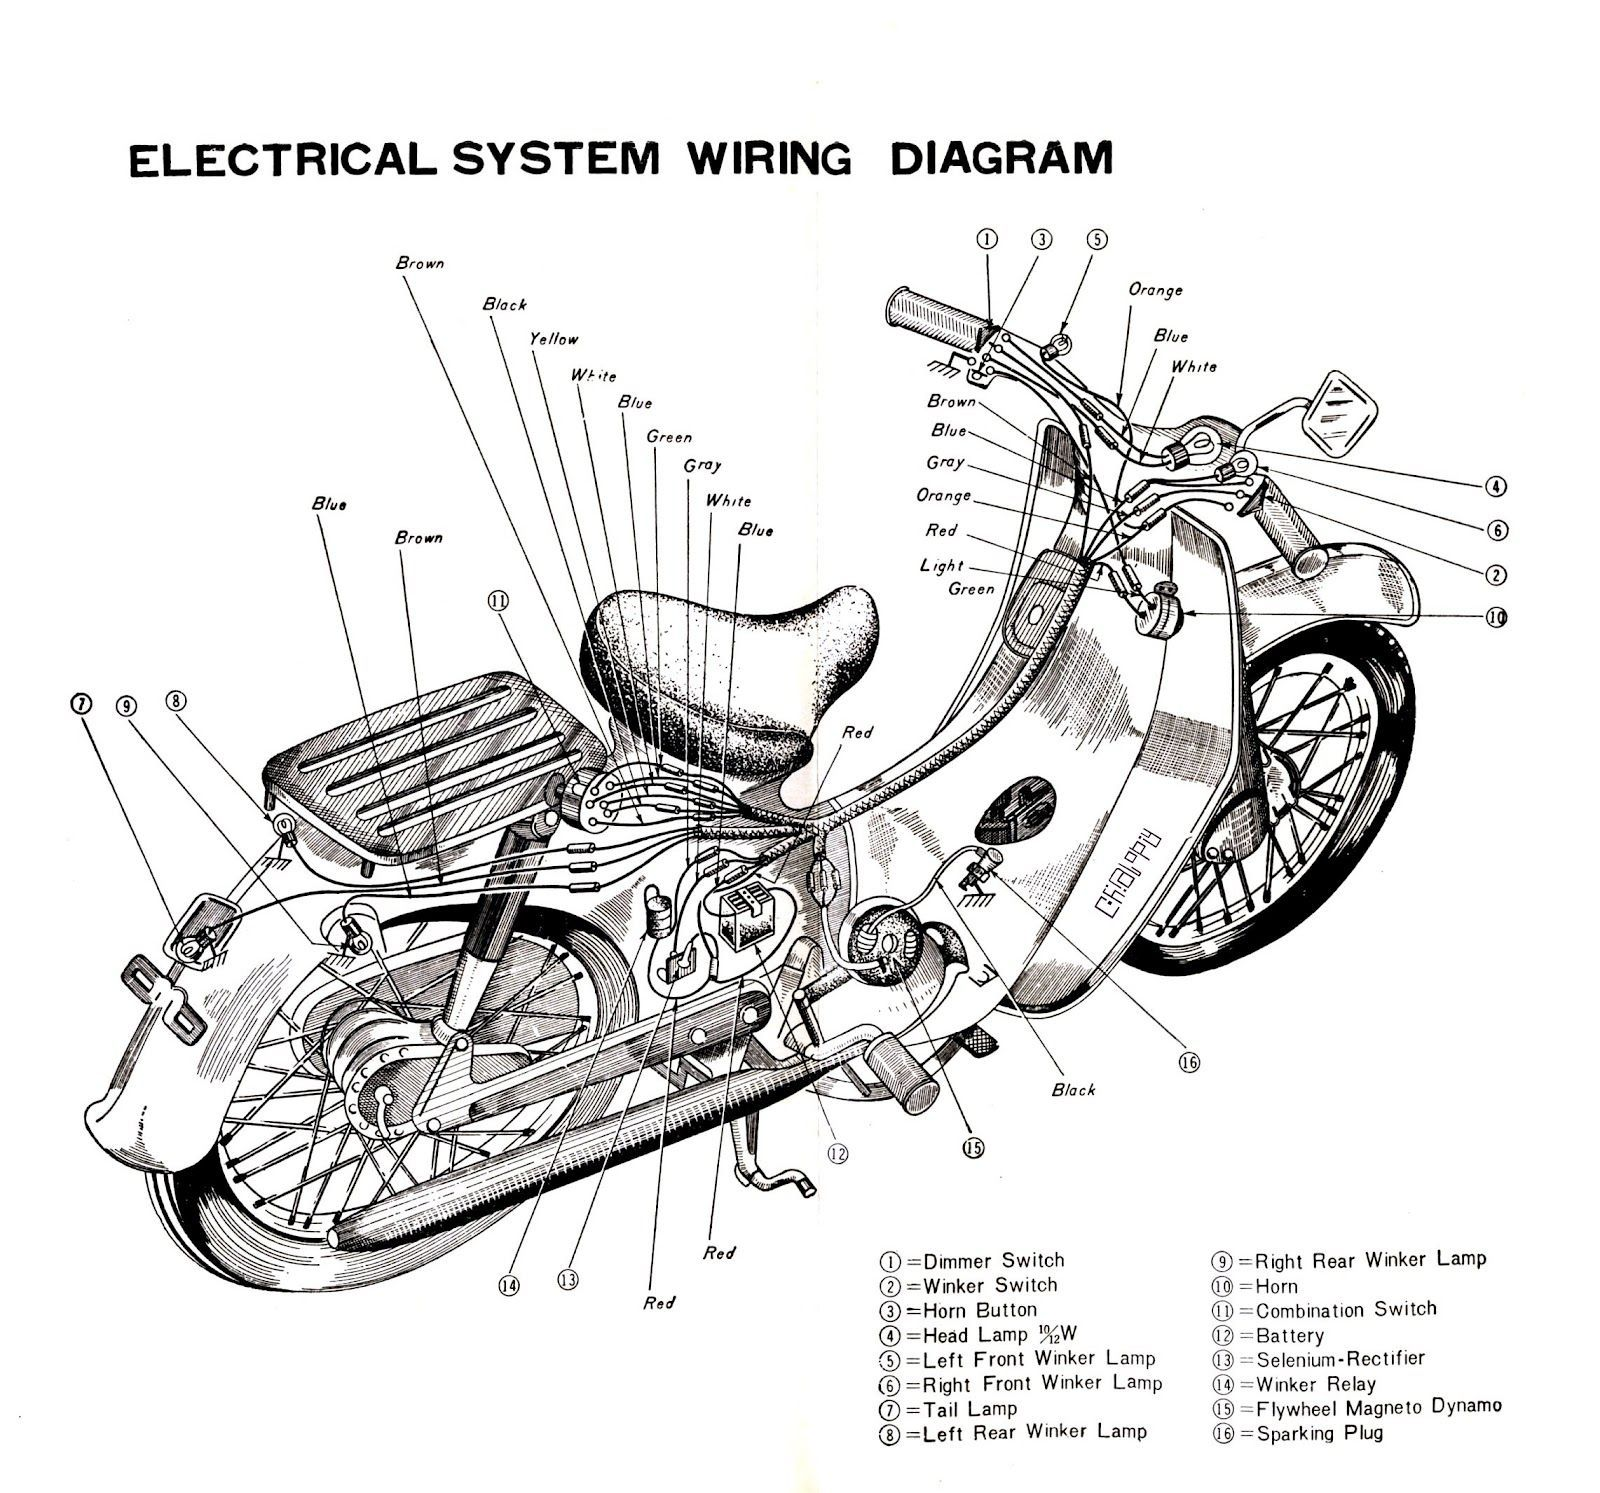 image result for electrical system wiring diagram honda c70 honda bycke diagram honda [ 1600 x 1493 Pixel ]